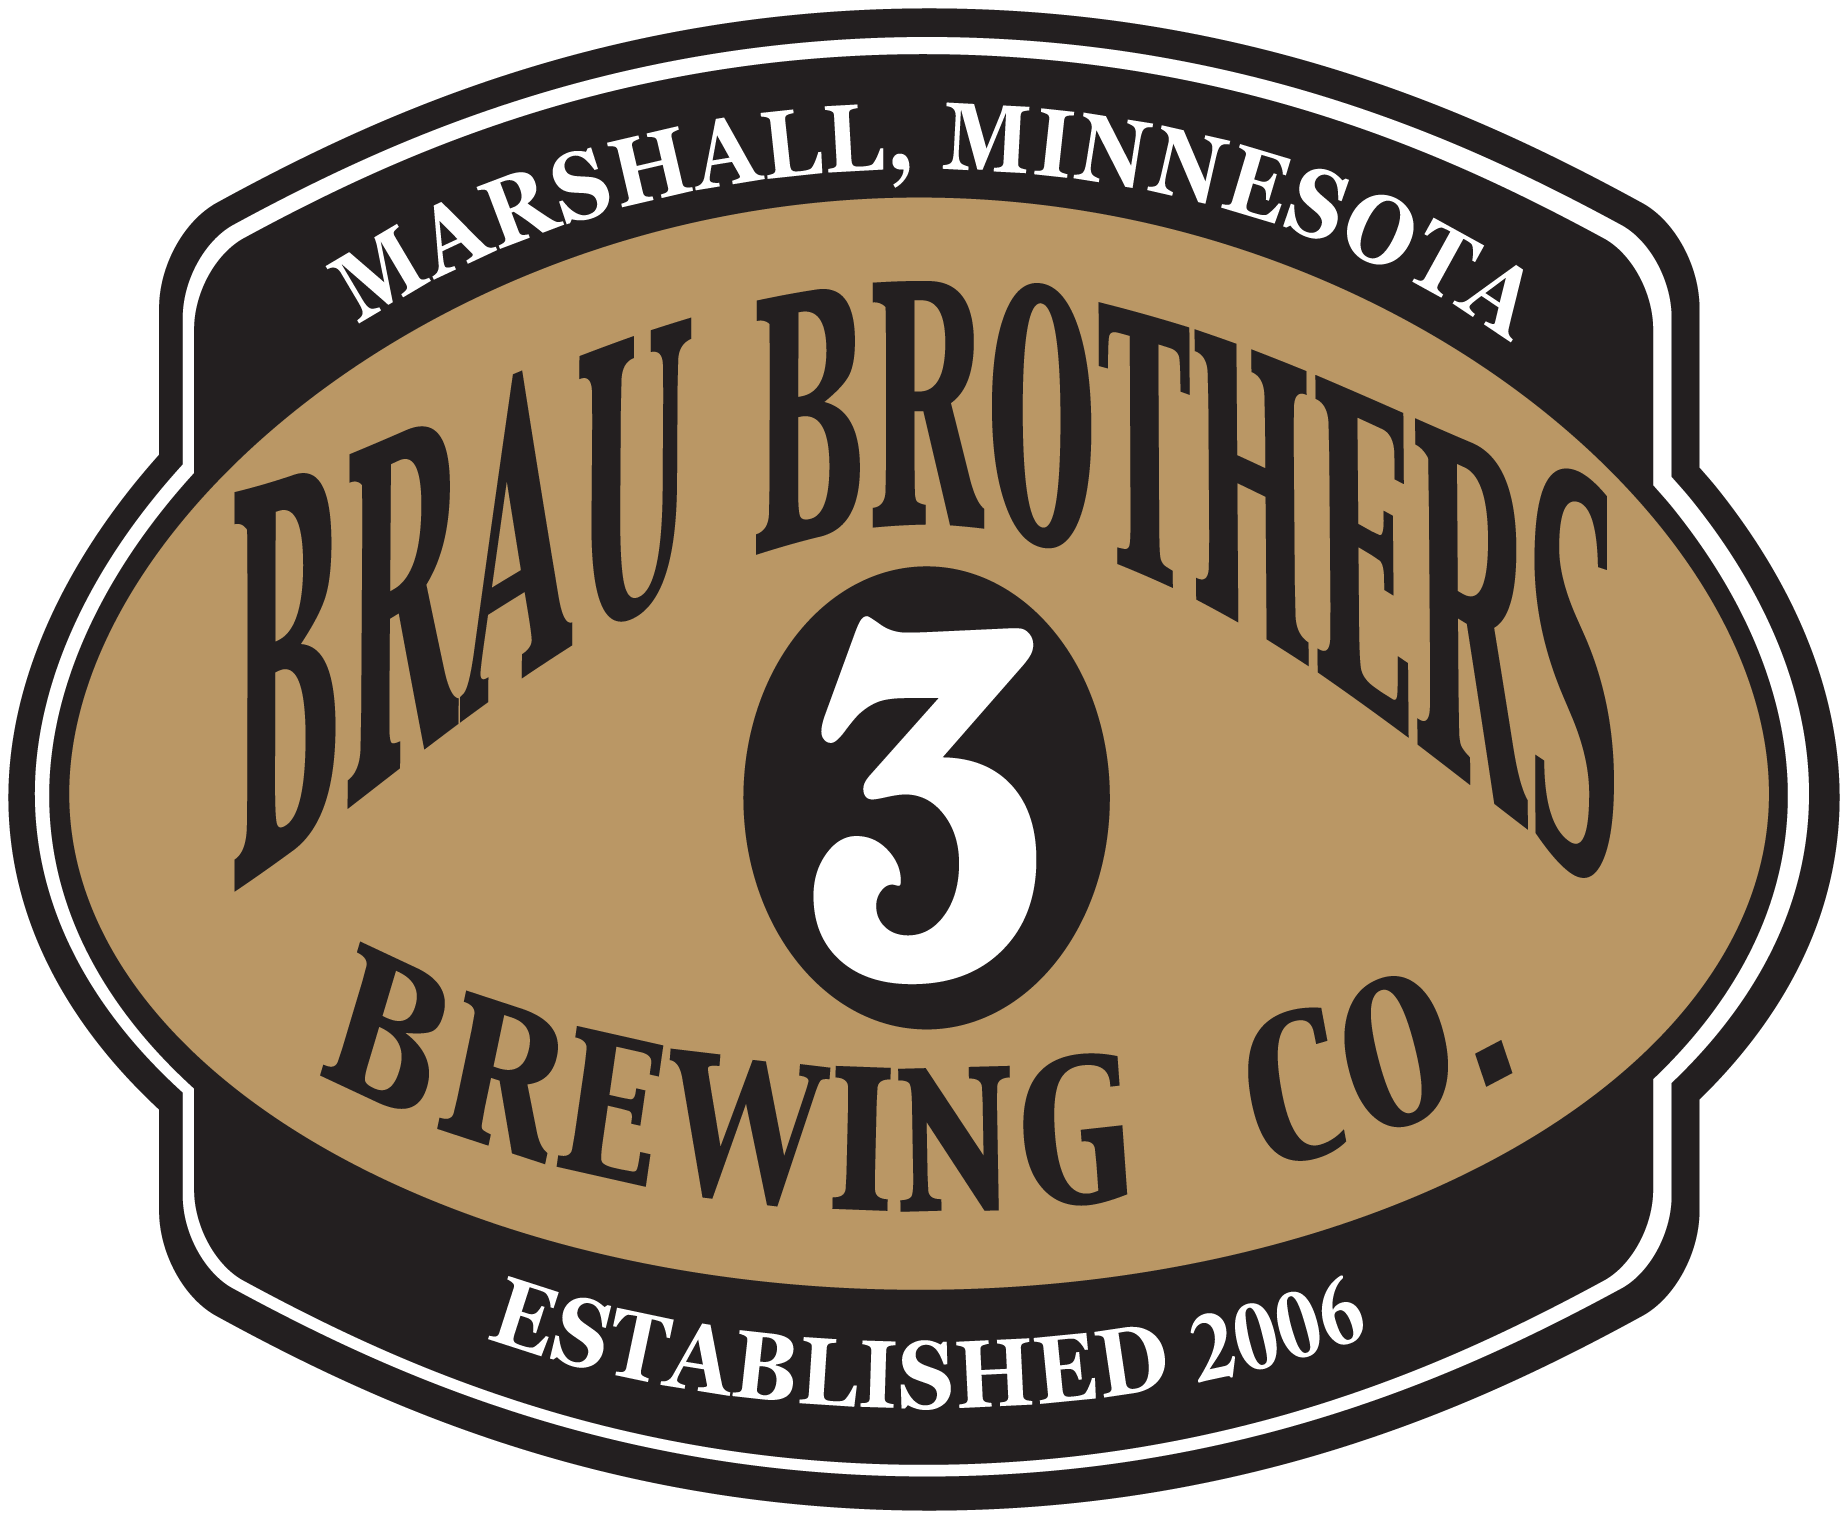 Tiny Minnesota family owned Craft Brewery brings high quality beers worthy of national recognition